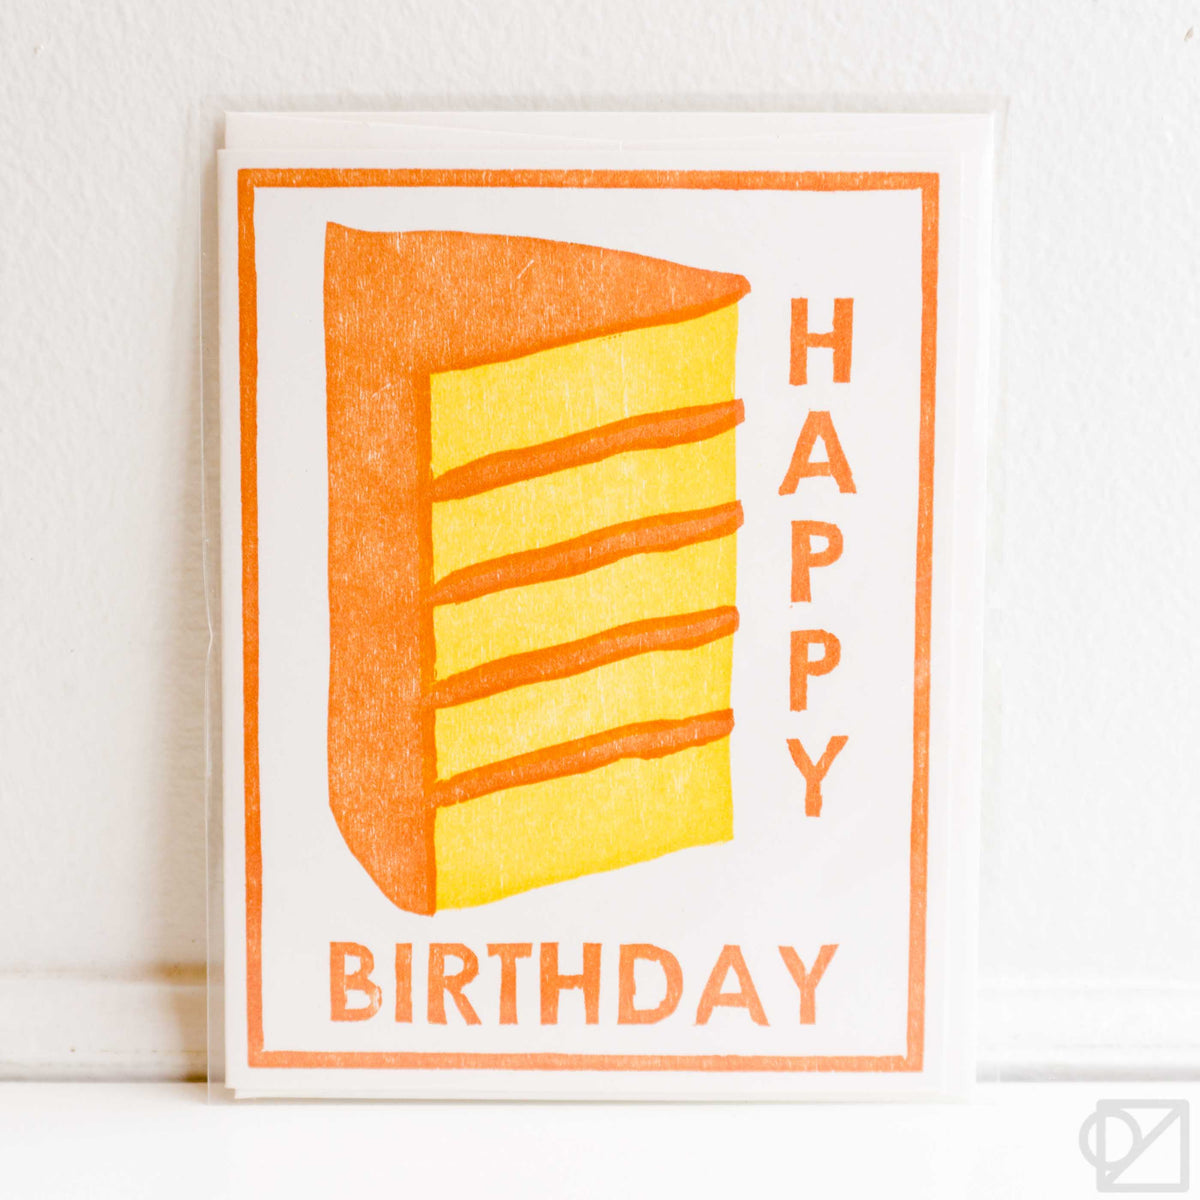 Happy Birthday Cake Letterpress Card